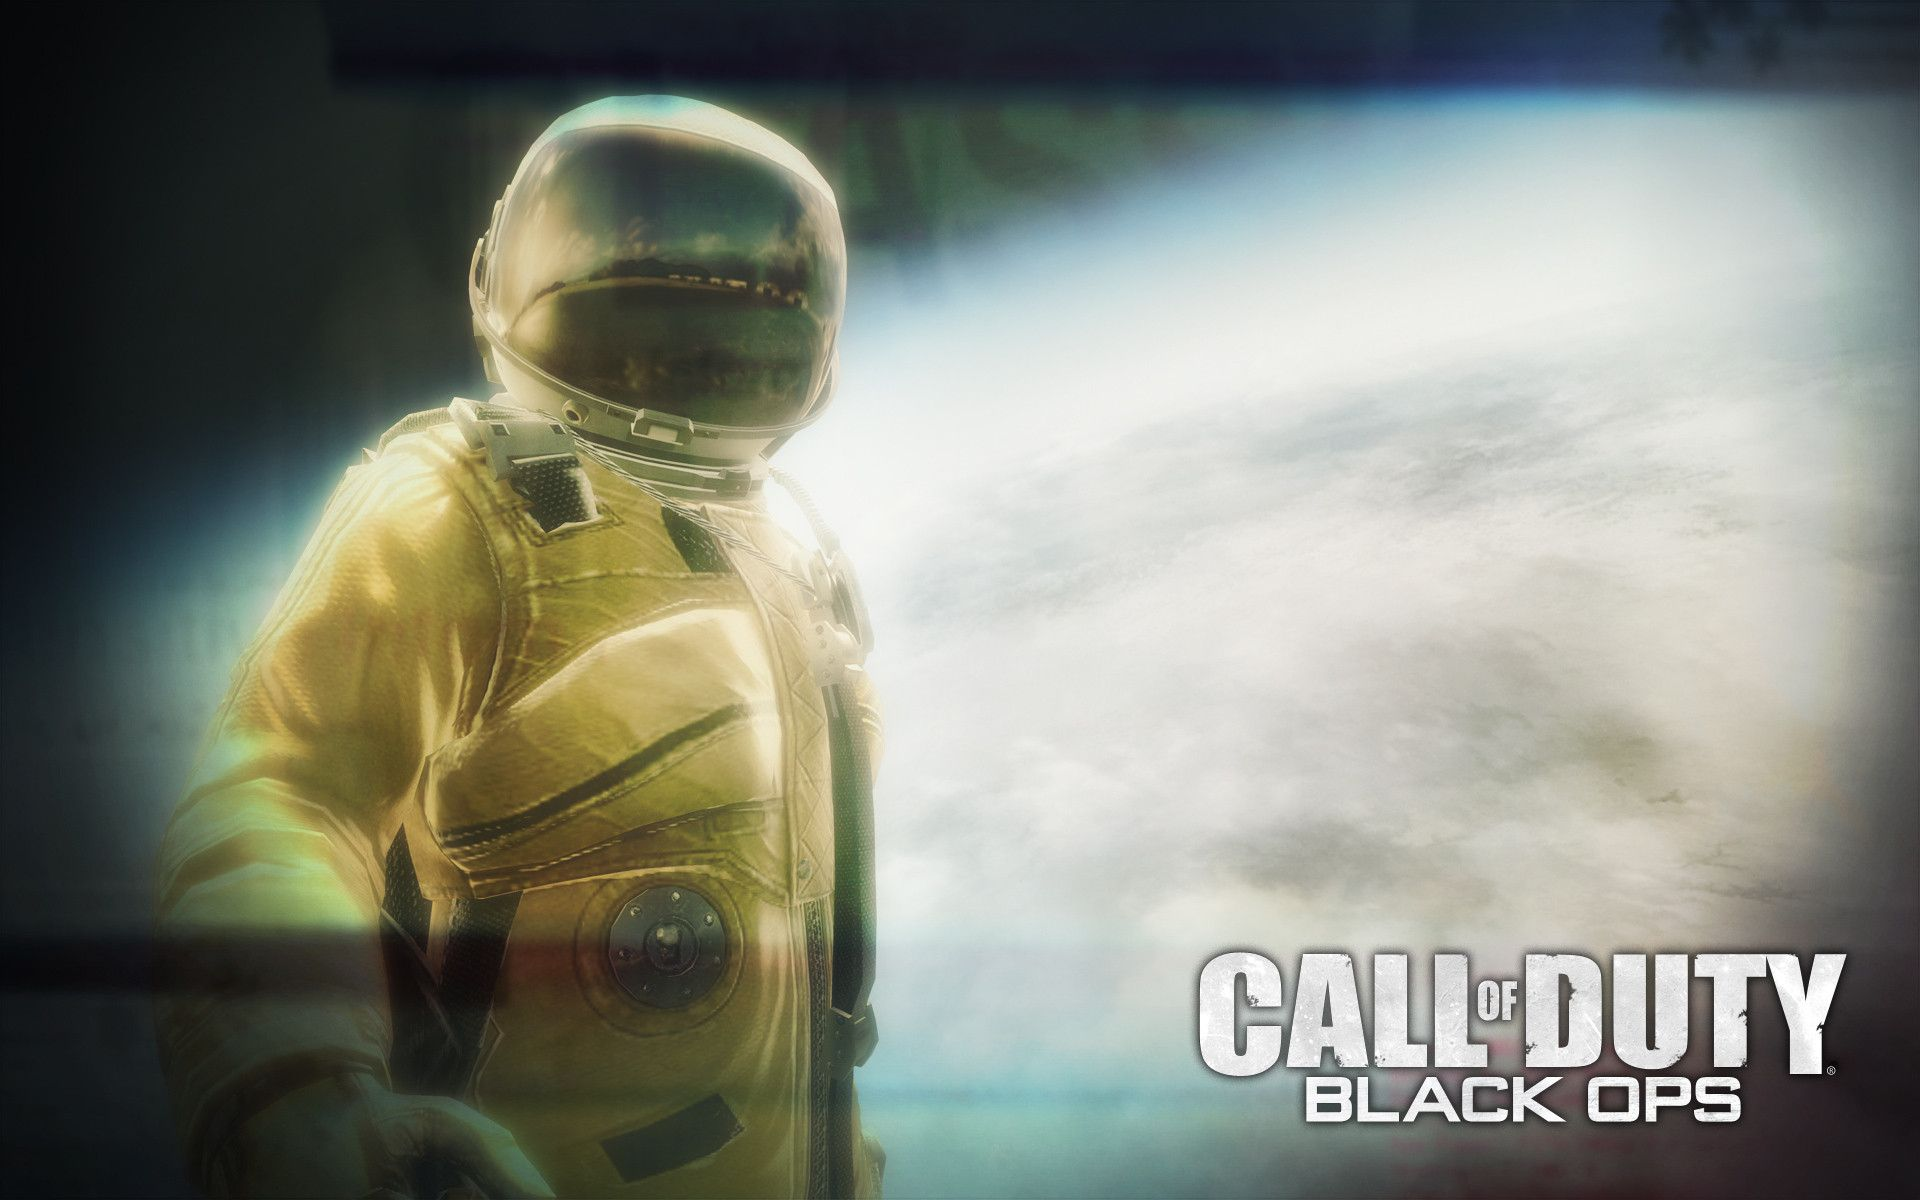 Call Of Duty: Black Ops Wallpapers HD - Wallpaper Cave